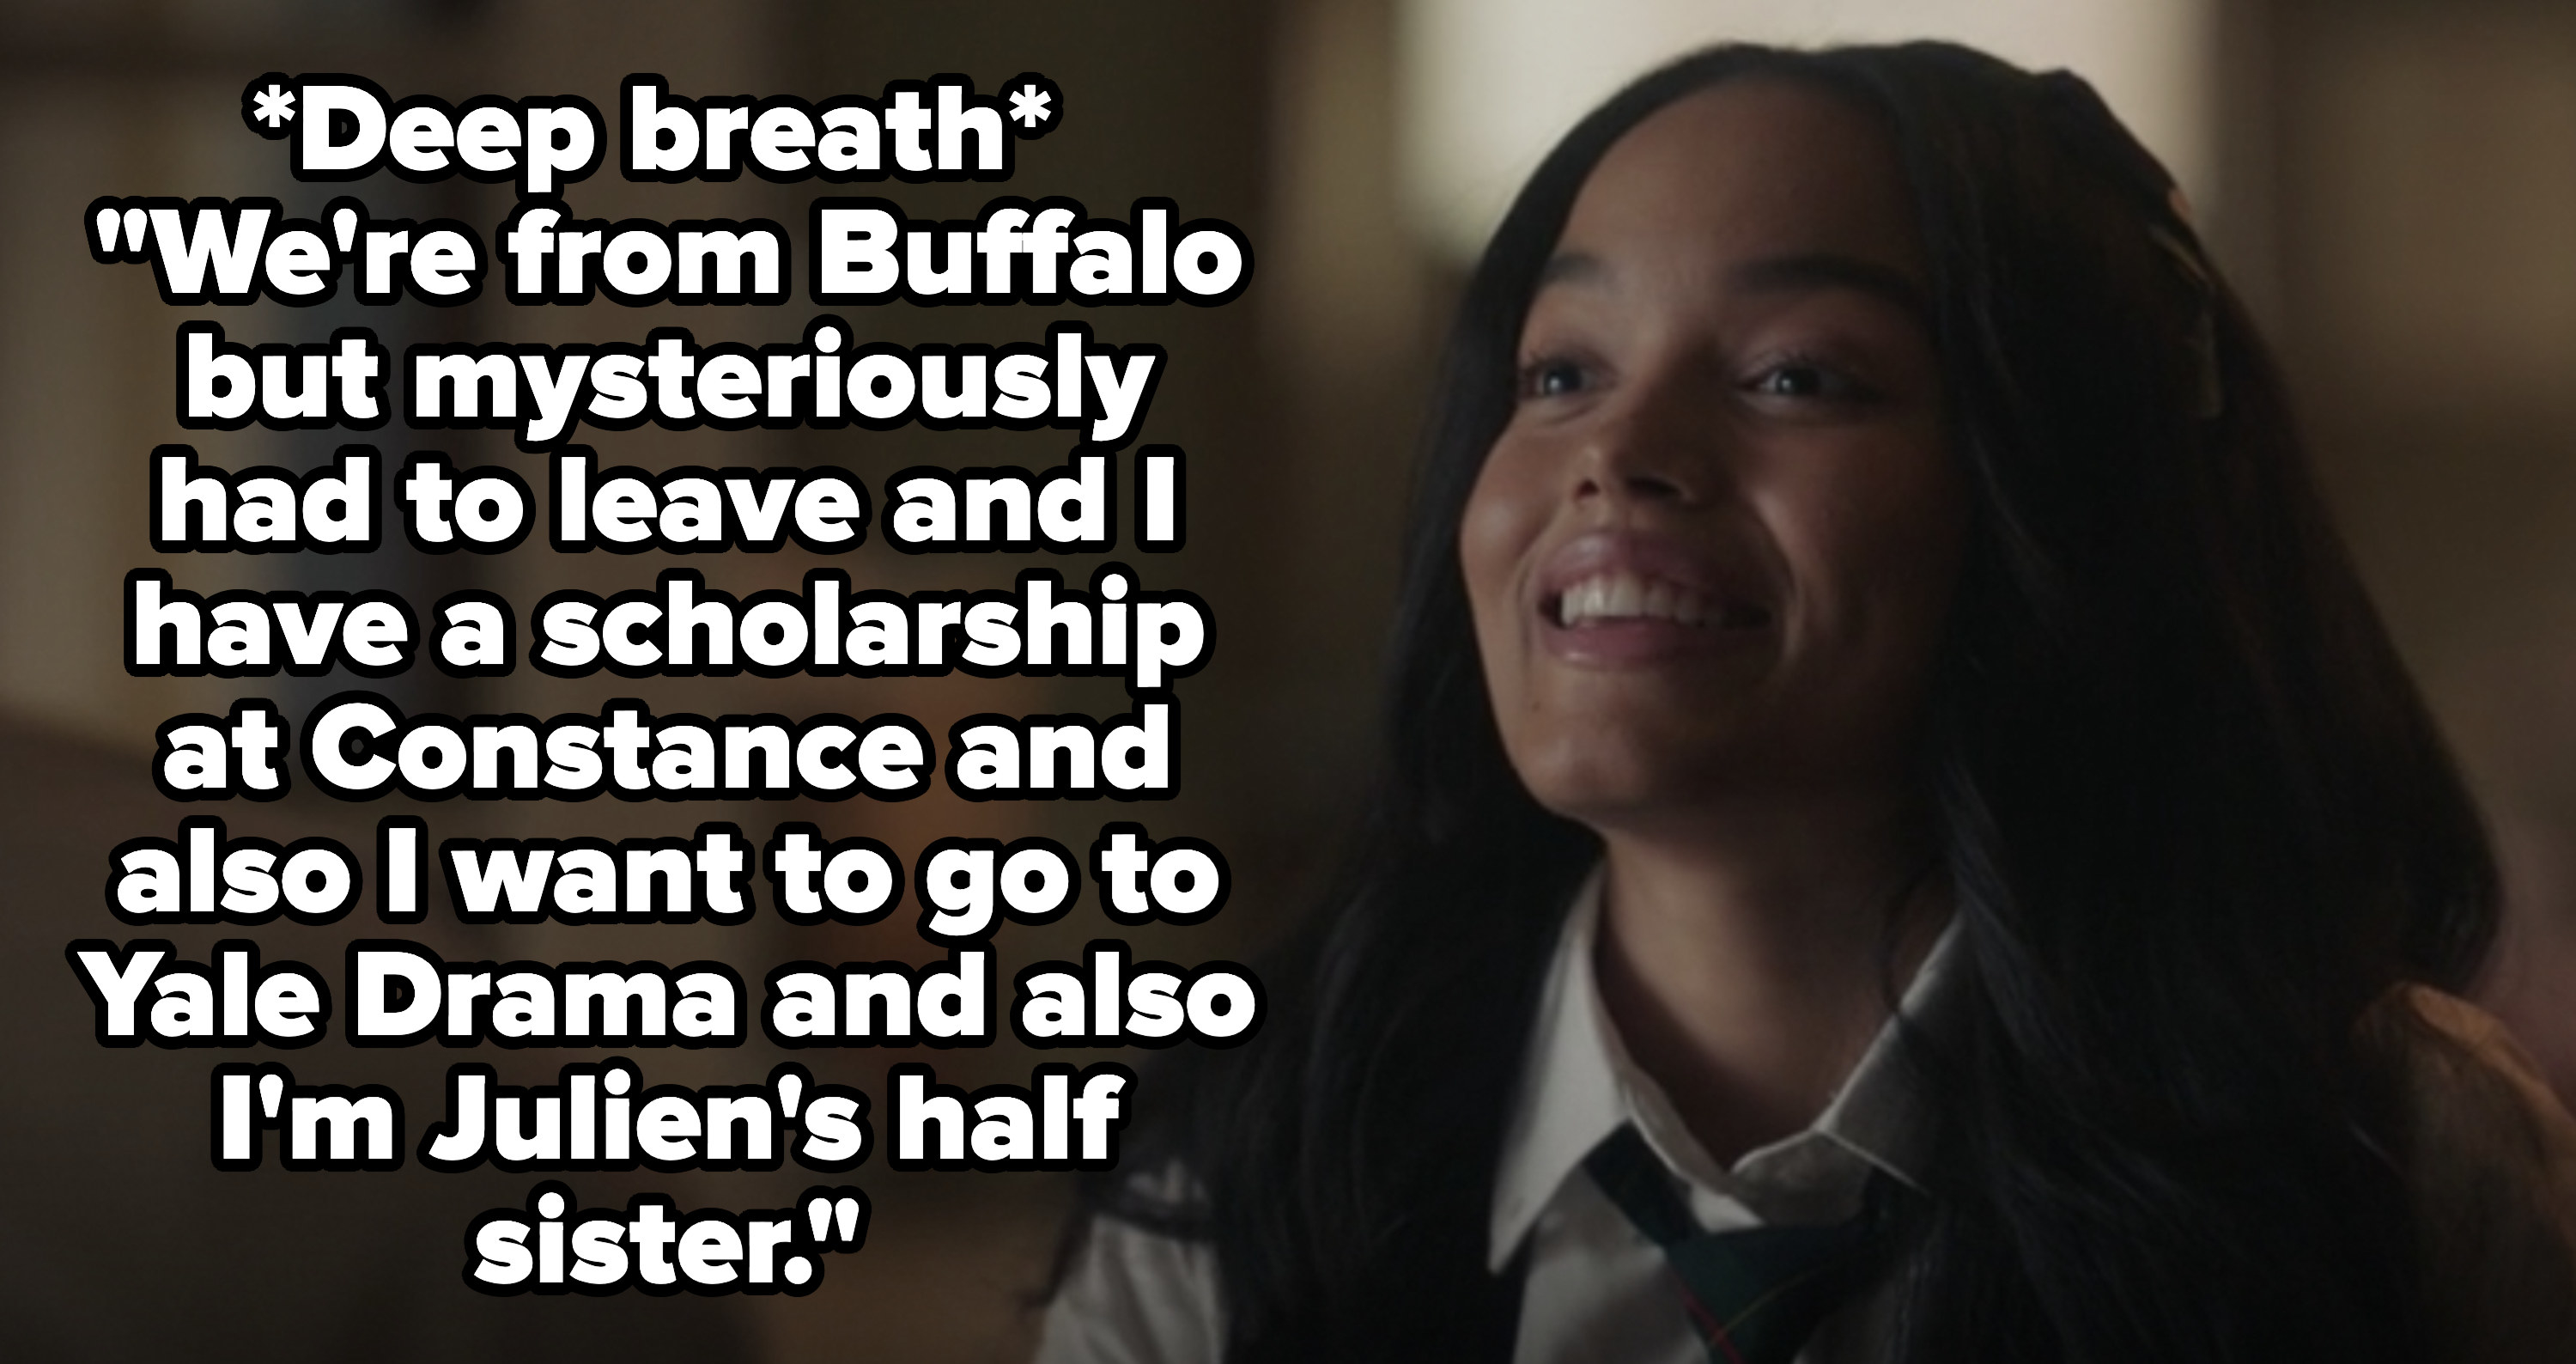 """Zoya with the caption """"We're from Buffalo but mysteriously had to leave and I have a scholarship at Constance and also I want to go to Yale Drama and also I'm Julien's half sister"""""""